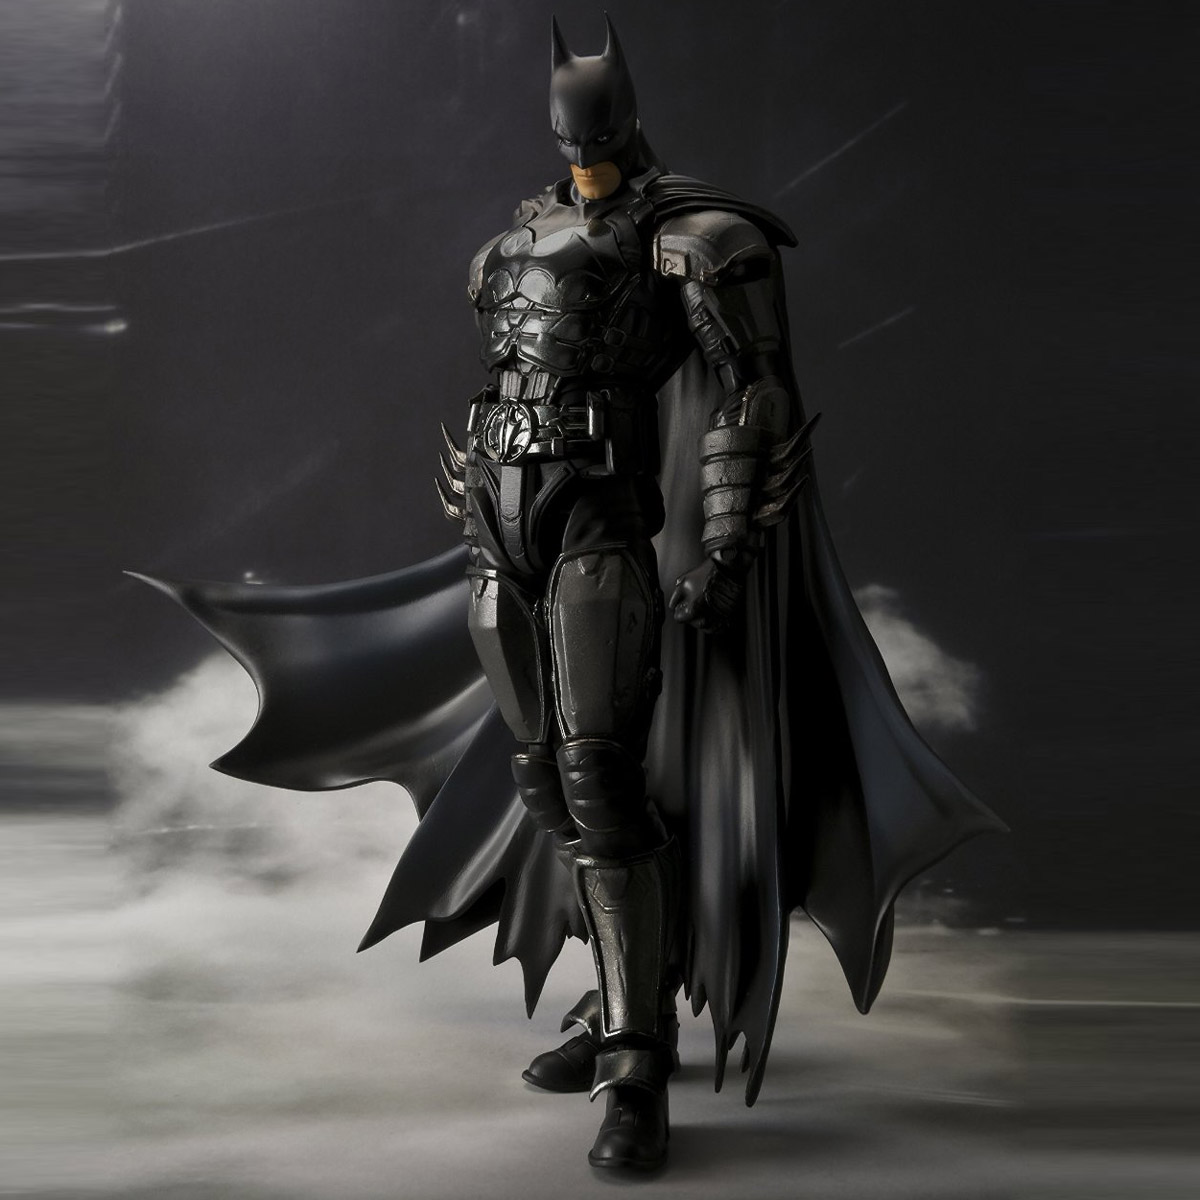 injustice gods among us batman sh figuarts action figure. Black Bedroom Furniture Sets. Home Design Ideas